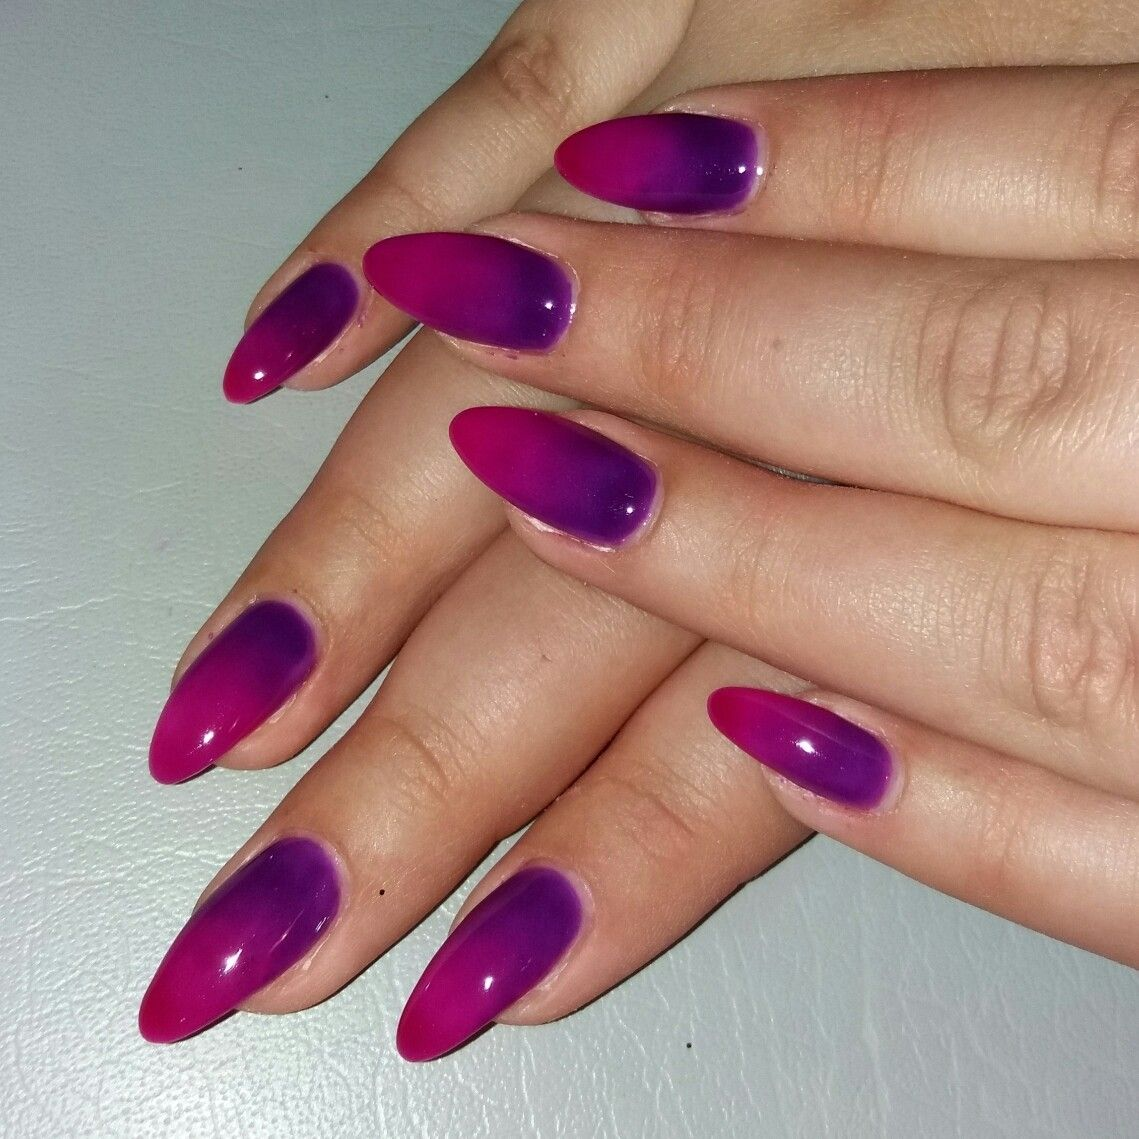 Purple And Pink Ombre Nails Pink Ombre Nails Purple Ombre Nails Ombre Nails